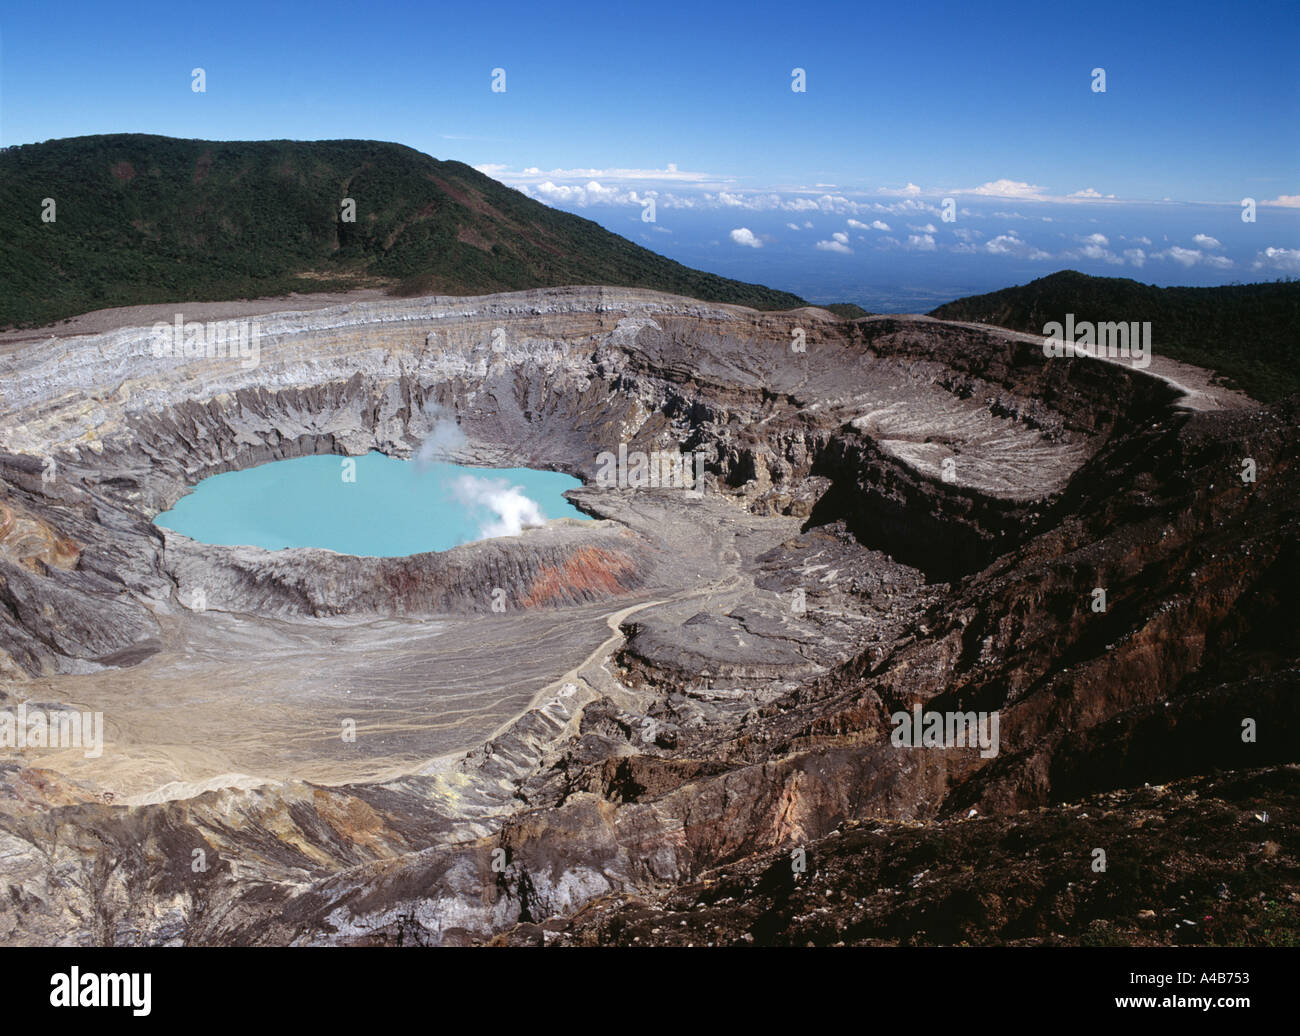 Crater of the Poas Volcano - Stock Image